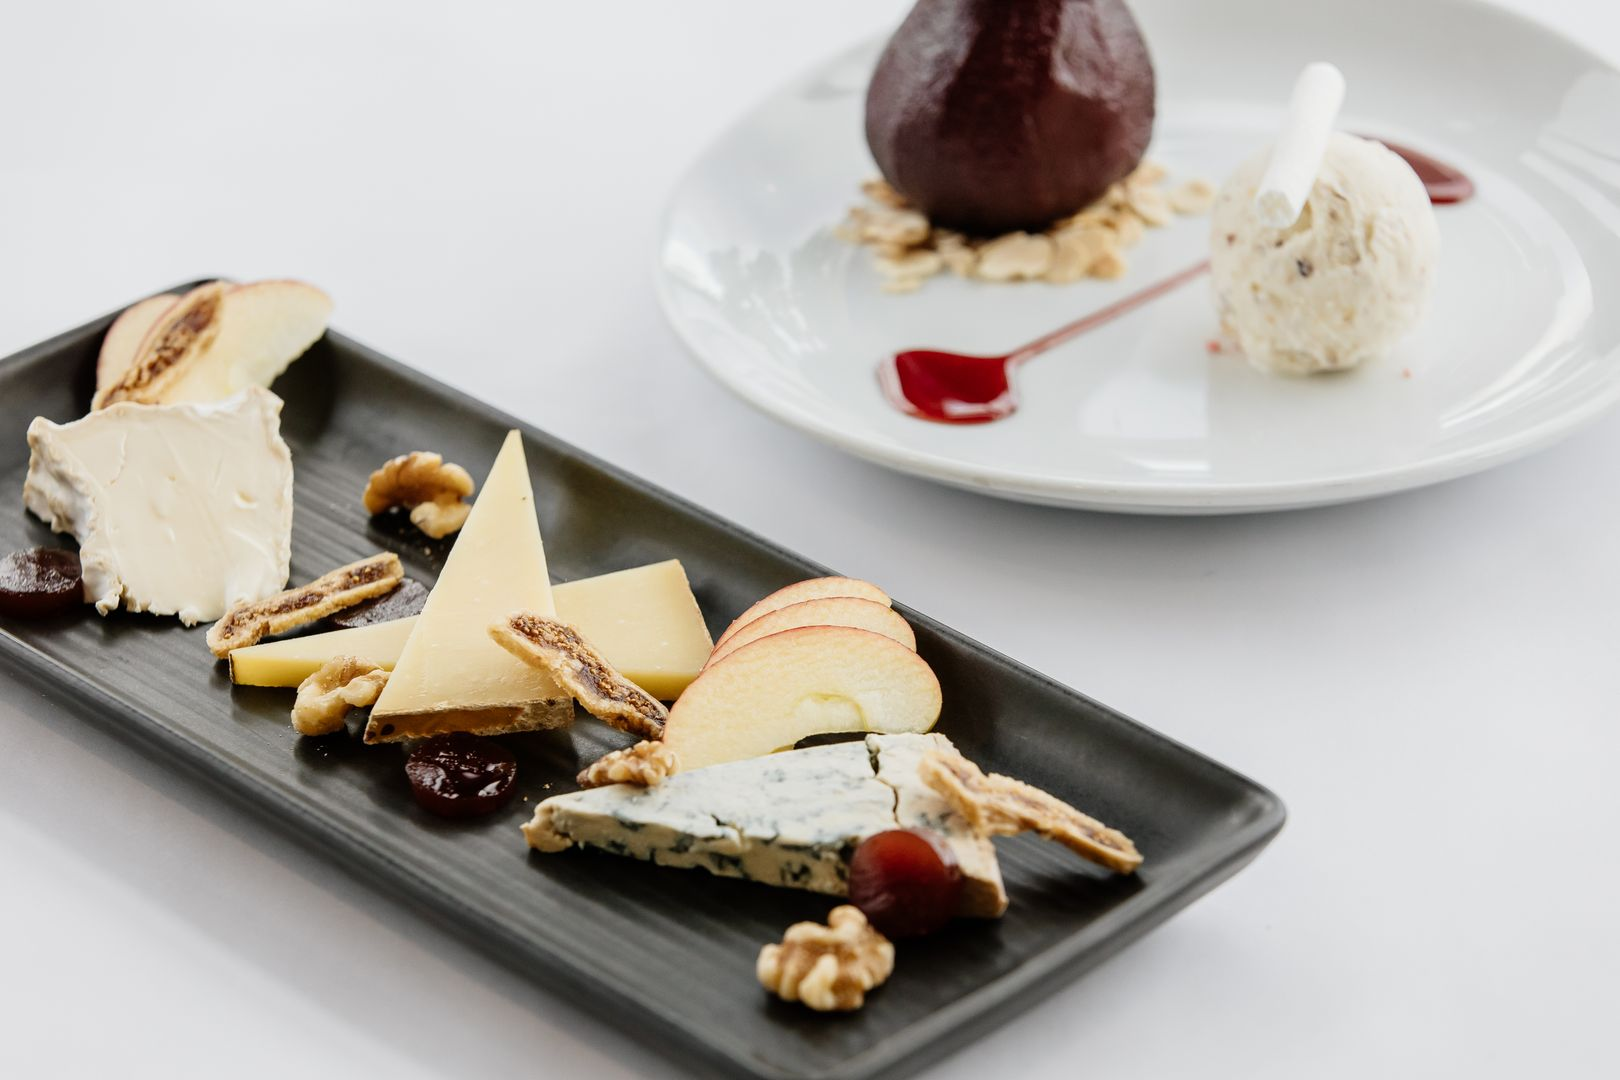 a cheese plate and a French dessert